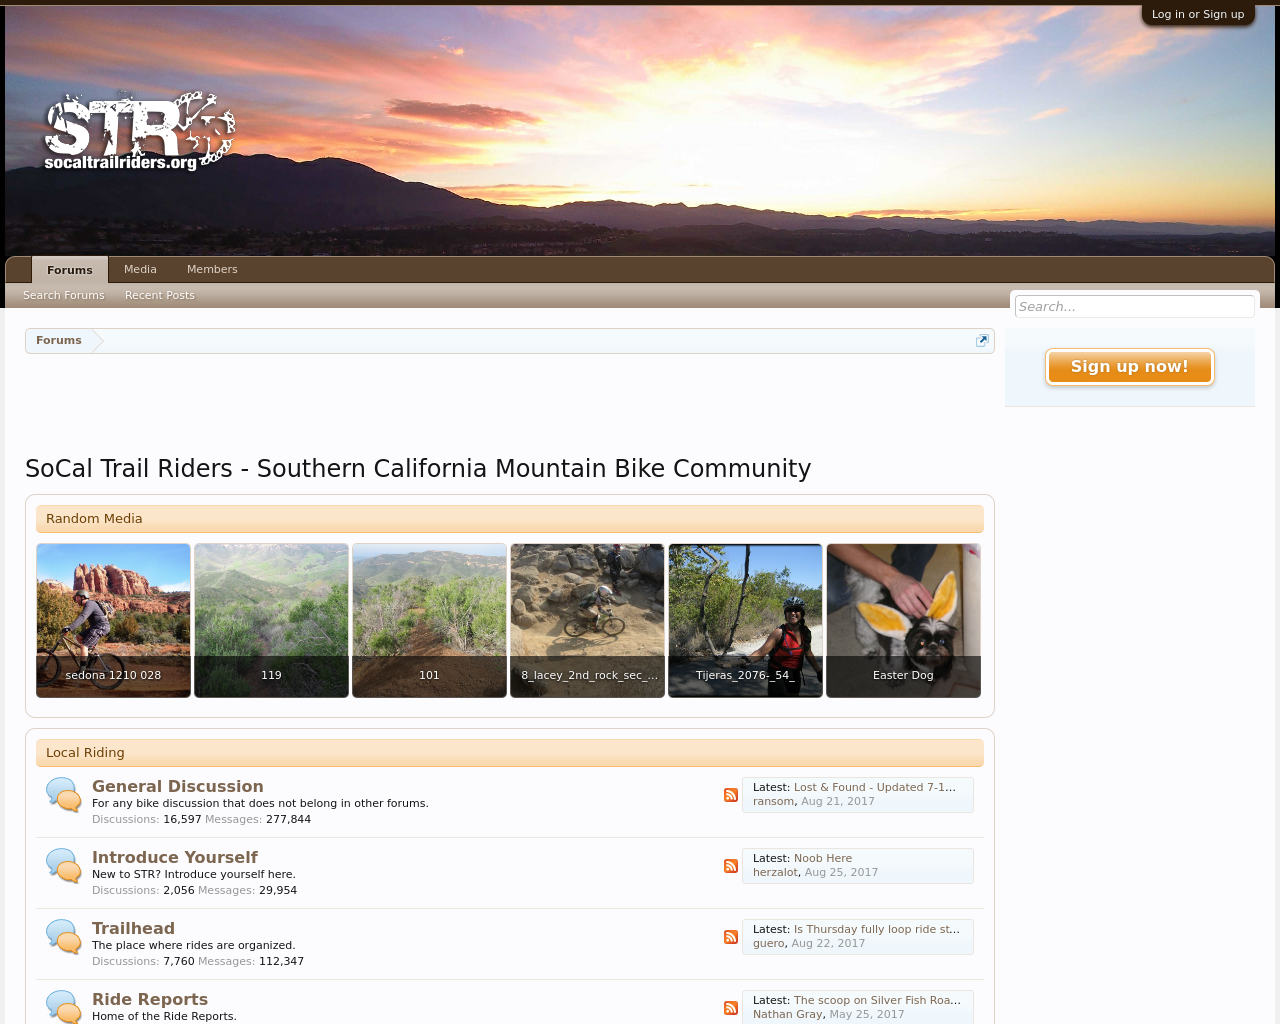 SocalTrailRiders.org-Advertising-Reviews-Pricing